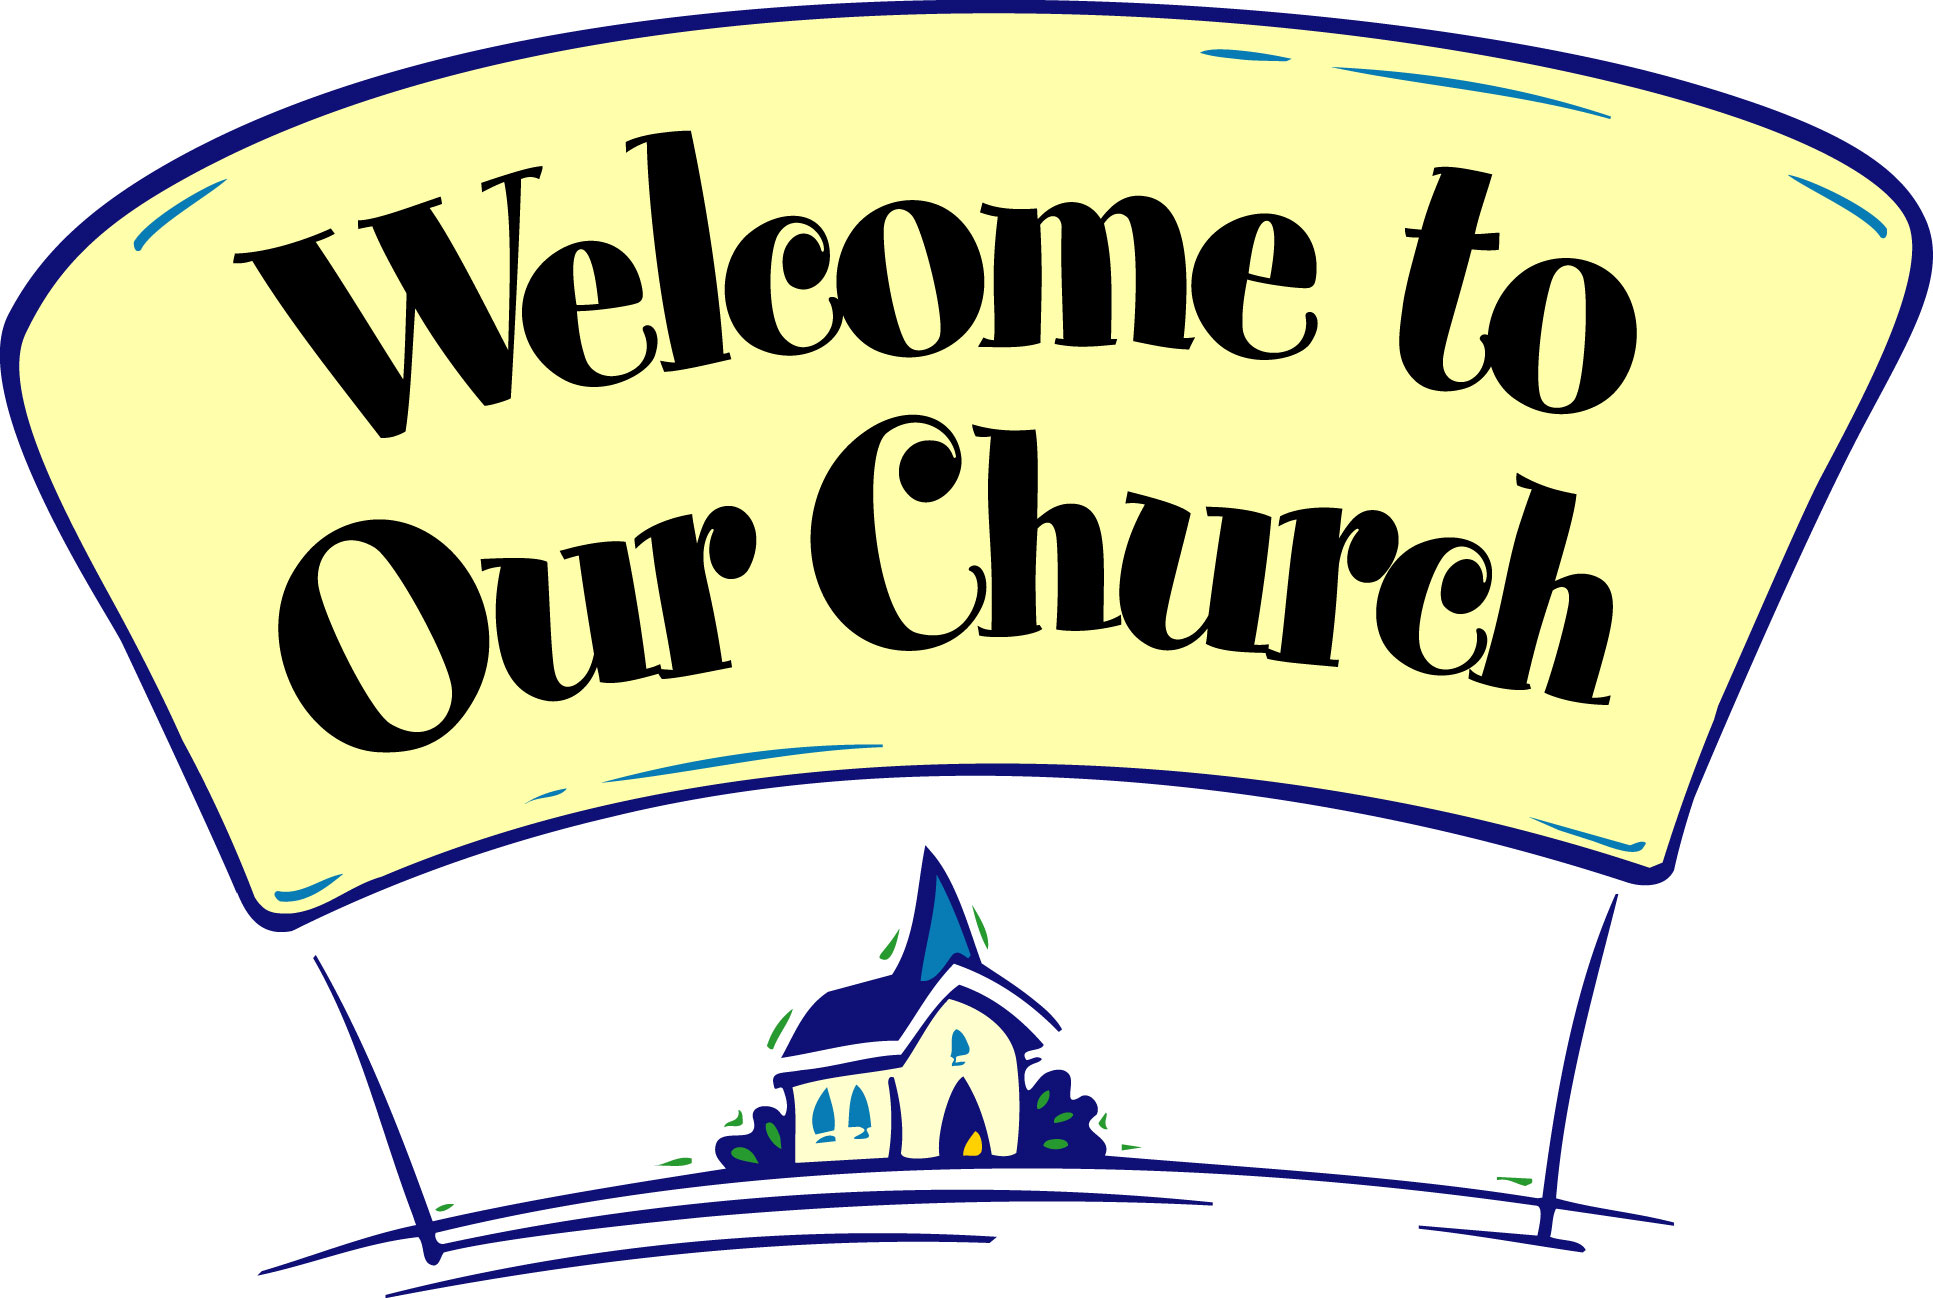 hight resolution of invite someone to church clipart